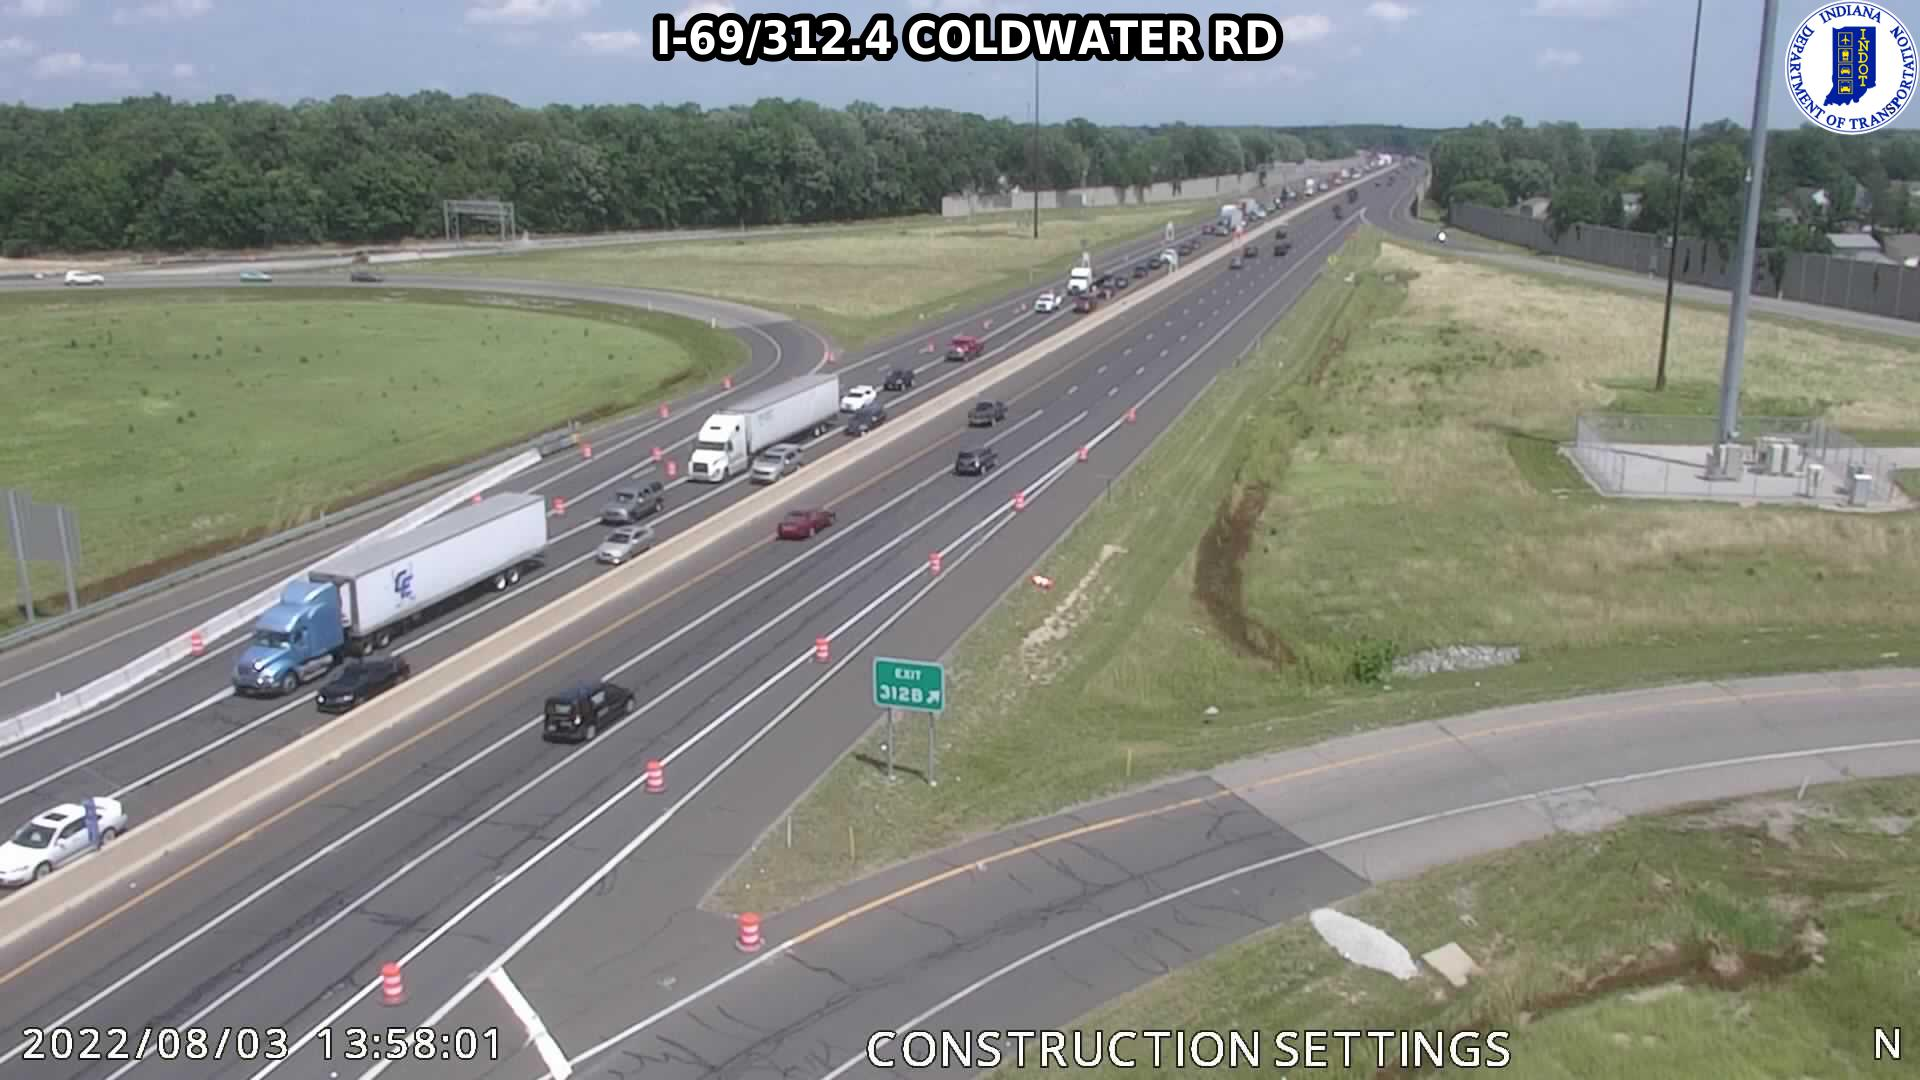 I-69 COLDWATER RD